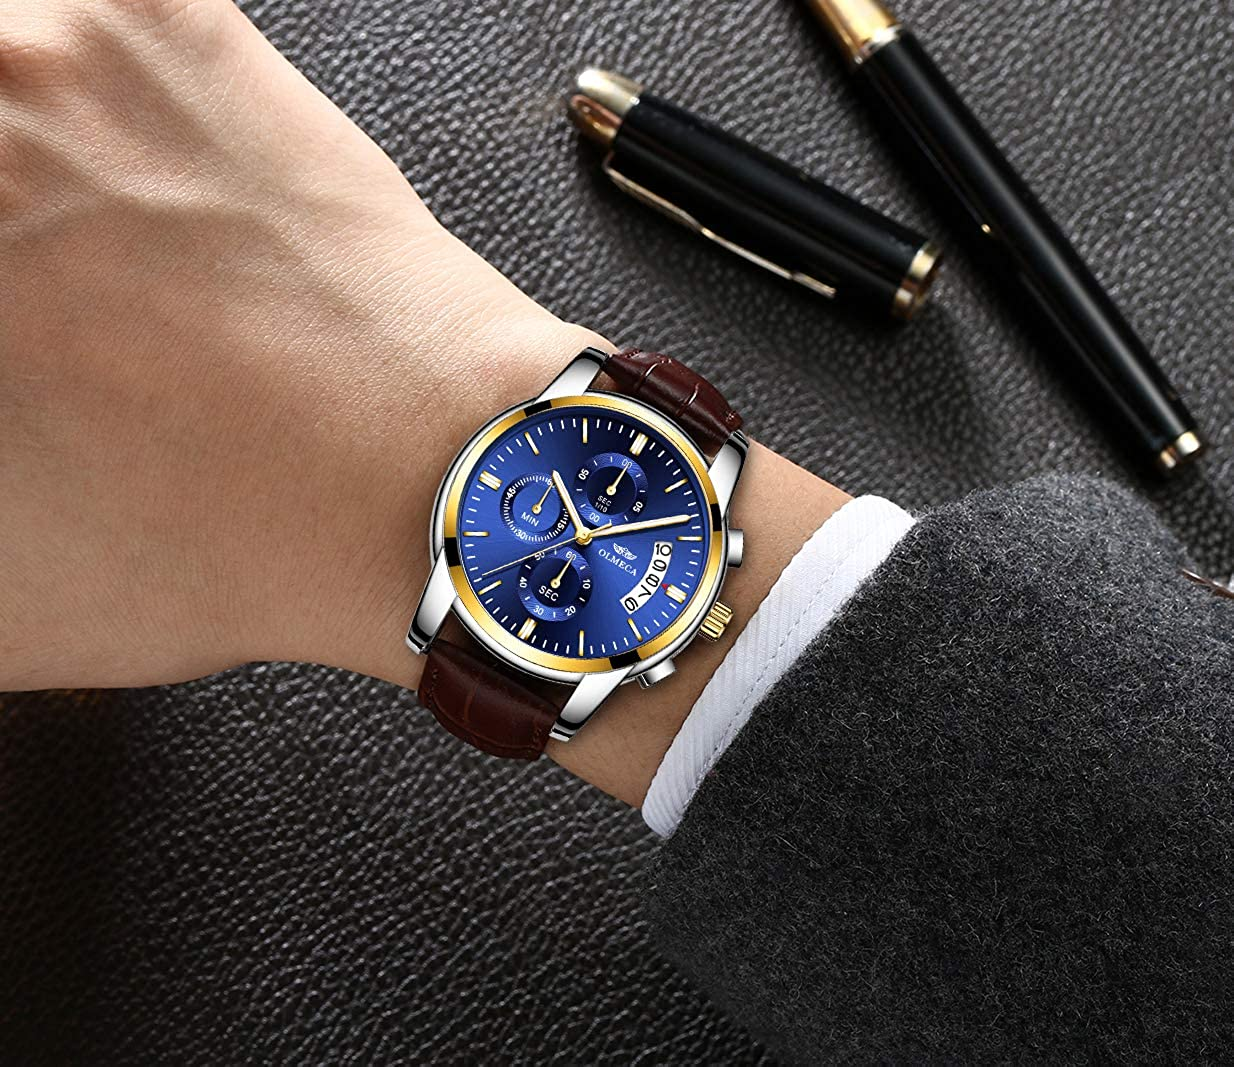 Amazon.com: OLMECA Mens Watches Luxury Business Wristwatches Waterproof Fashion Quartz Watches Blue Dial Leather Watch: Watches